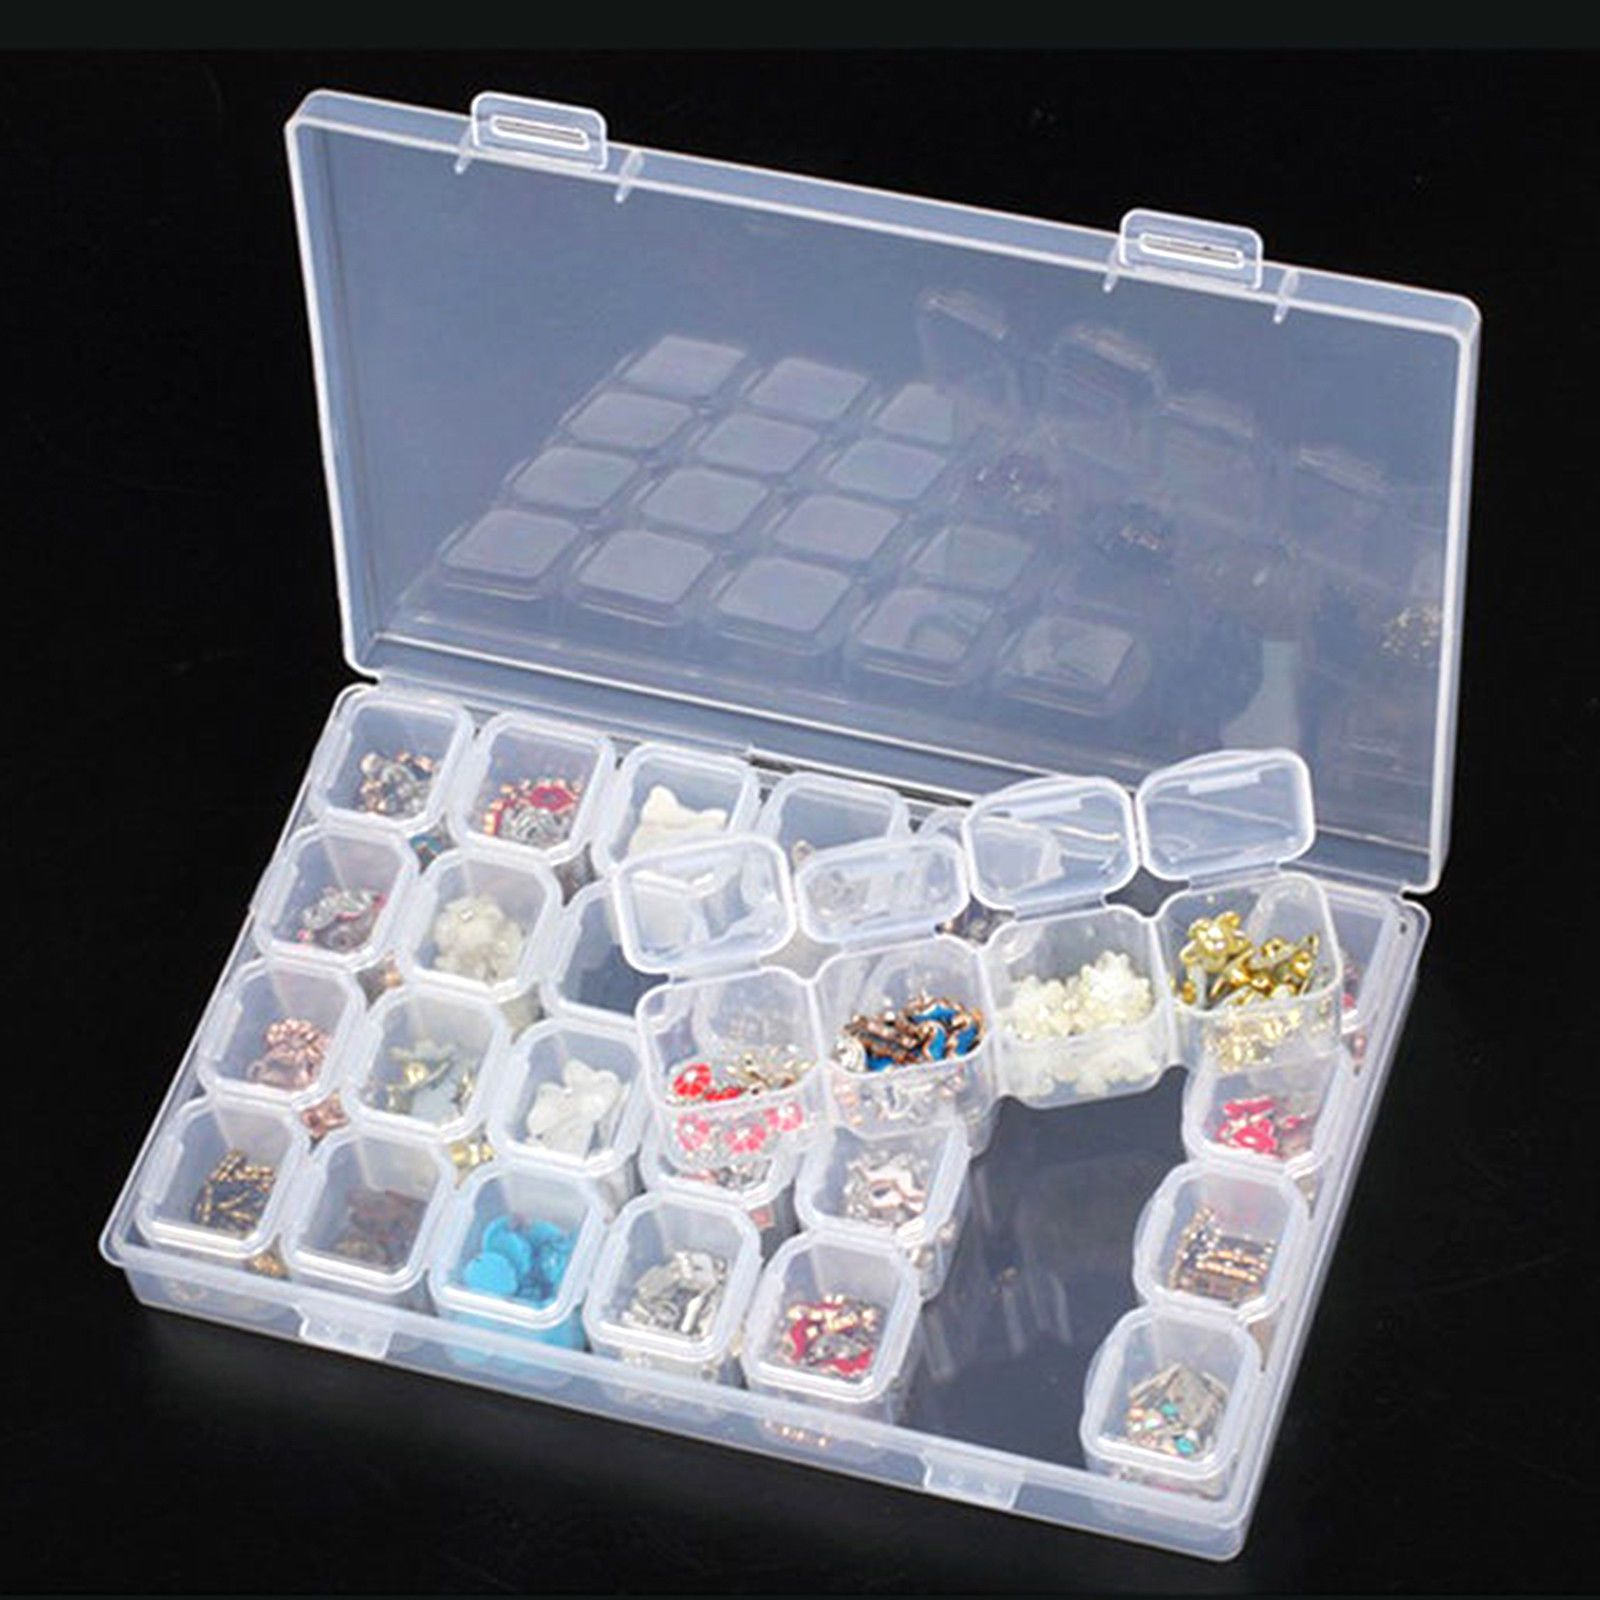 28 Jars Slots Nail Art Tips Empty Storage Box Case Jewelry Beads Organizer 131bcd562176